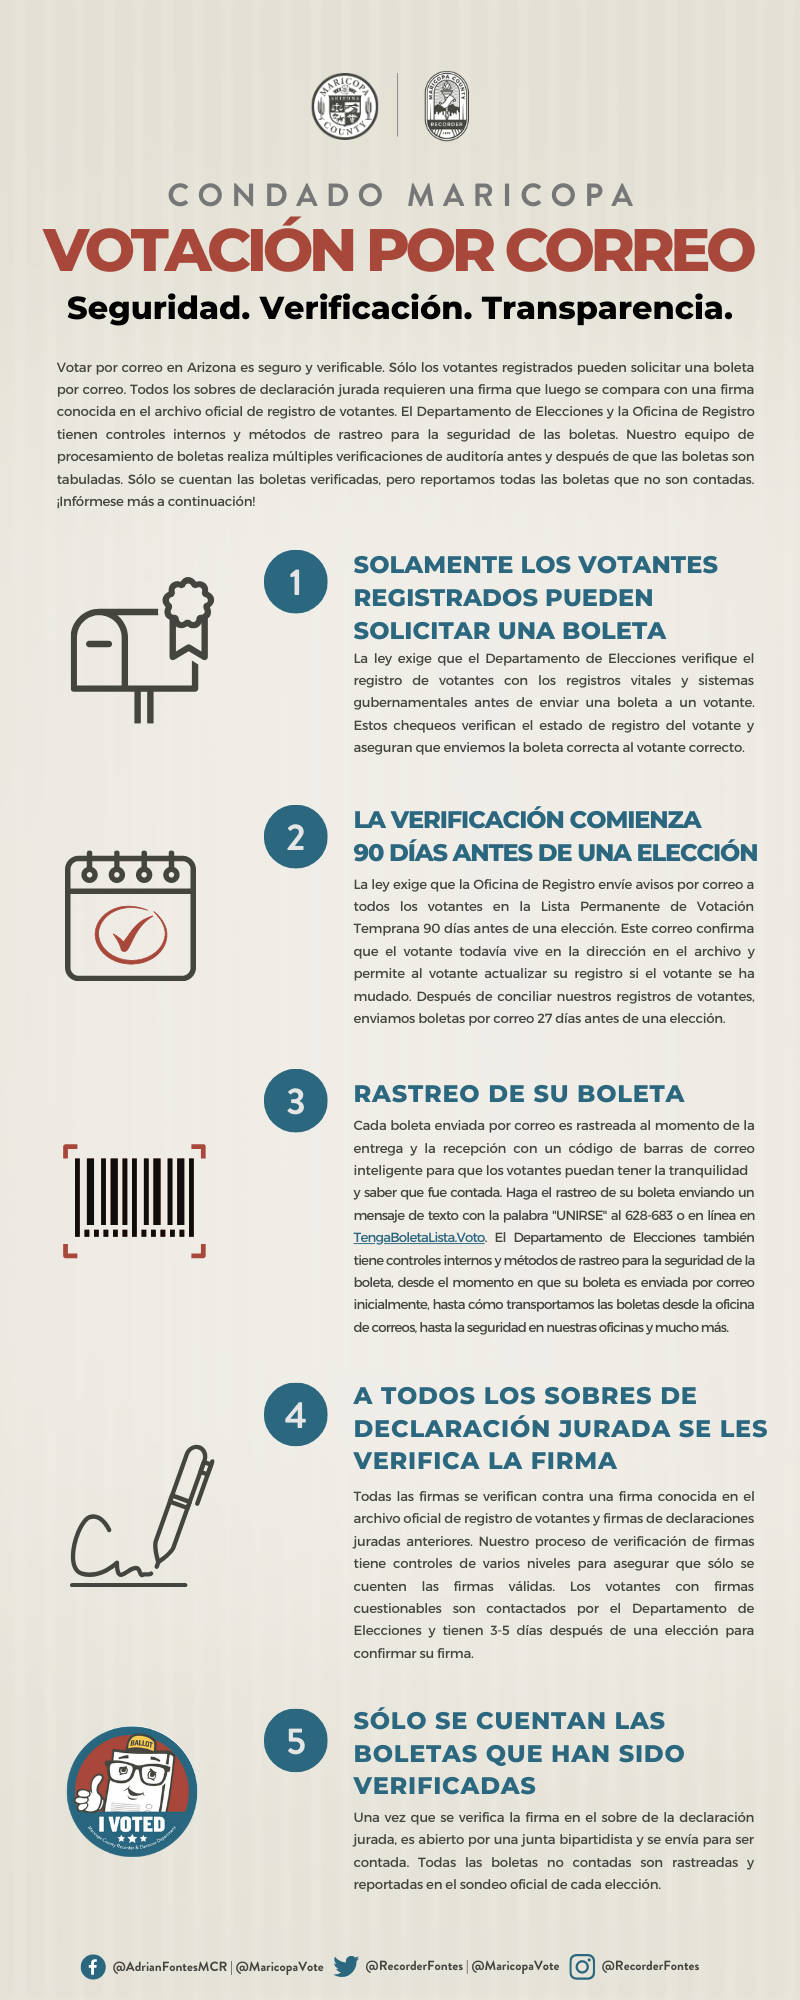 Voting By Mail Security Infographic_Spanish.png